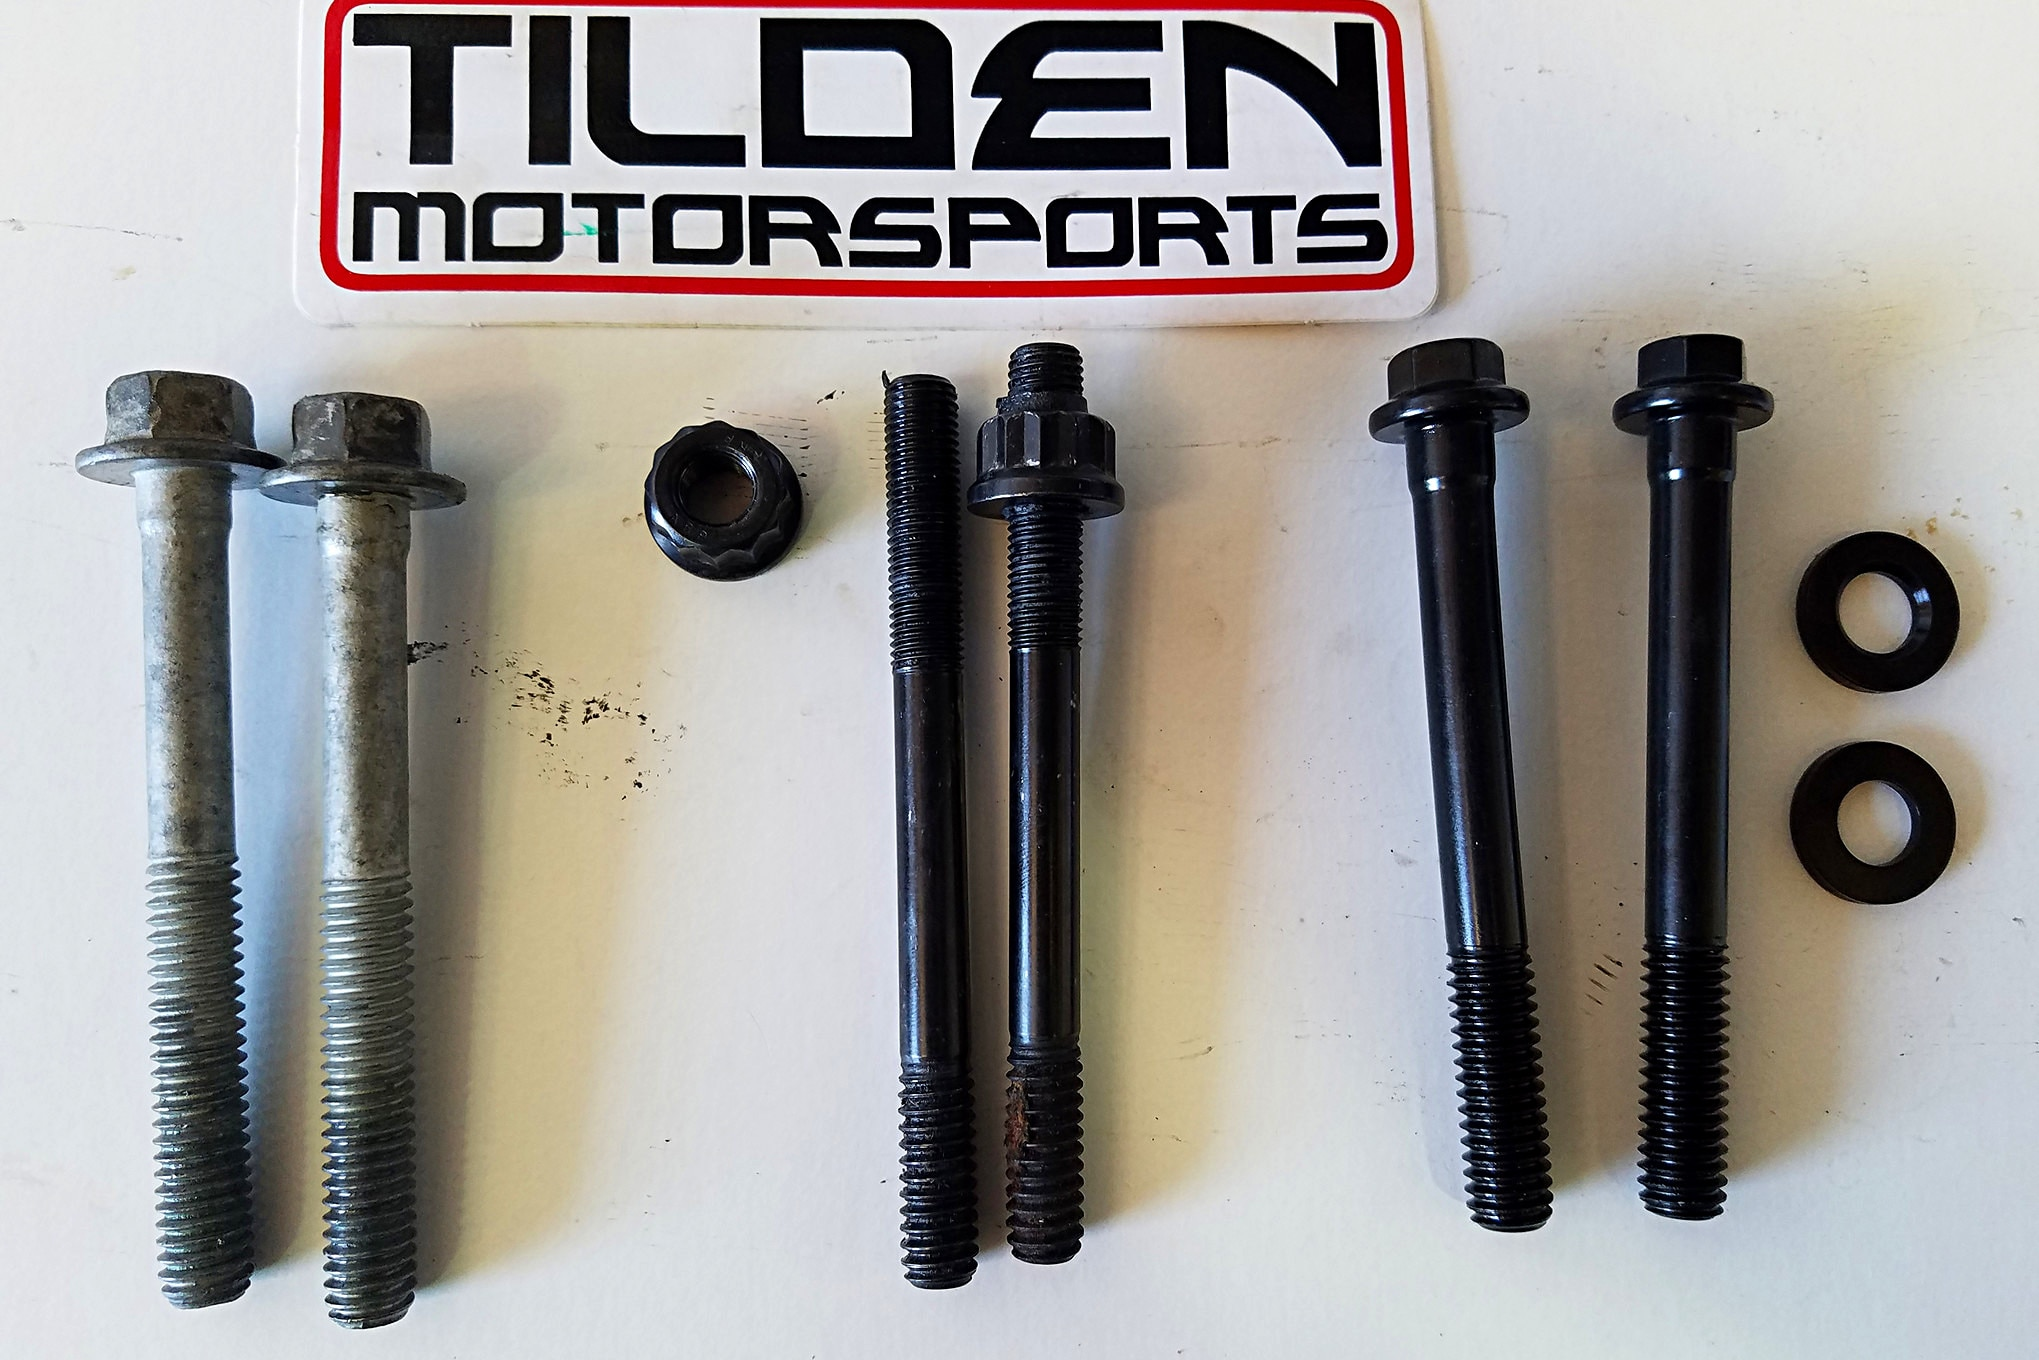 In another photo from Tilden Motorsports, from left to right we have ARP head bolts, stock LS head bolts, and ARP head bolts and nuts. Either the ARP head studs or ARP head bolts can be reused, but Tilden warns that the engine block has to be machined with the studs in place as they distort the bores. This is not necessary with the factory's TTY bolts or ARP's reusable head bolts since both distort the block in the same manner as each other.